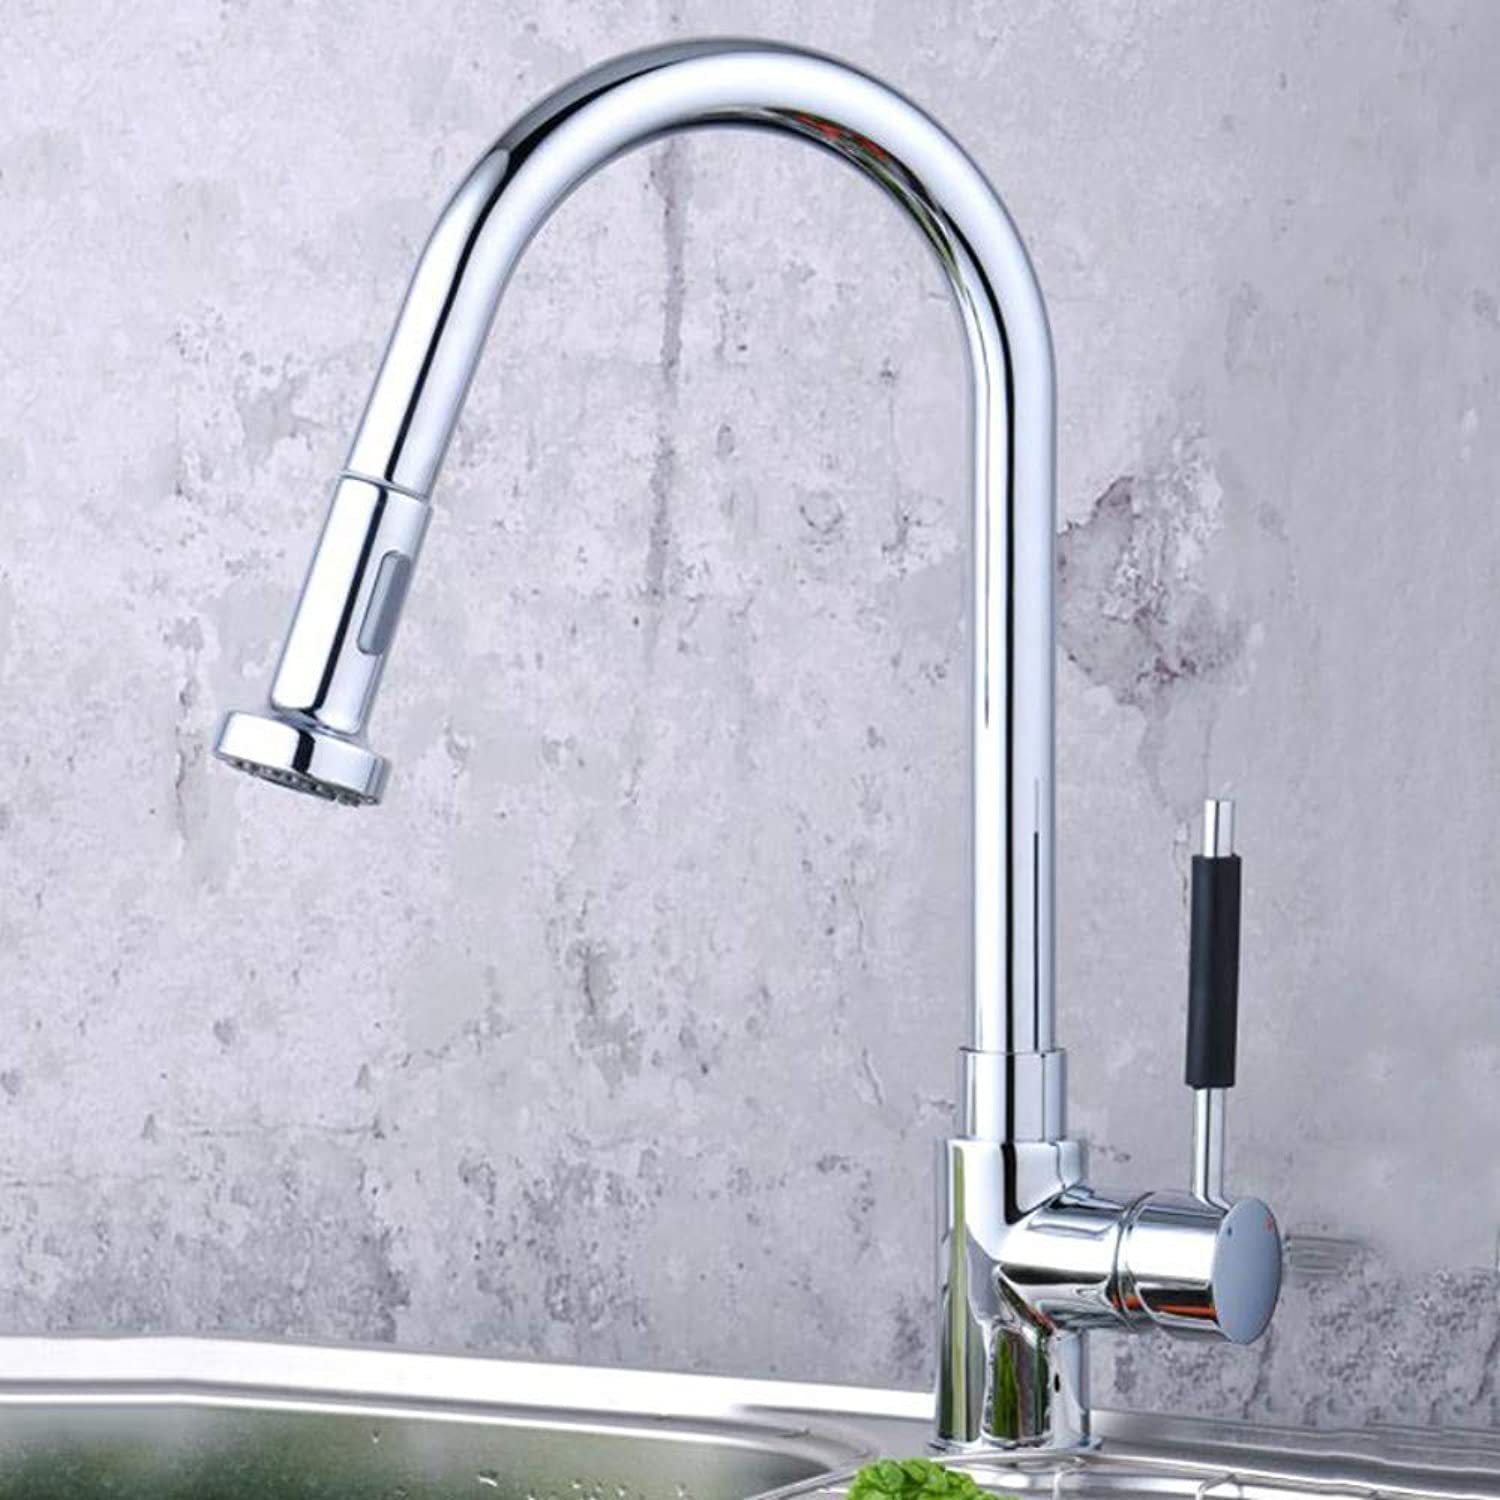 Brushed redating Kitchen Faucet Pull-Out Chrome-Plated Dish Faucet Kitchen Single-Connected Water Dragon